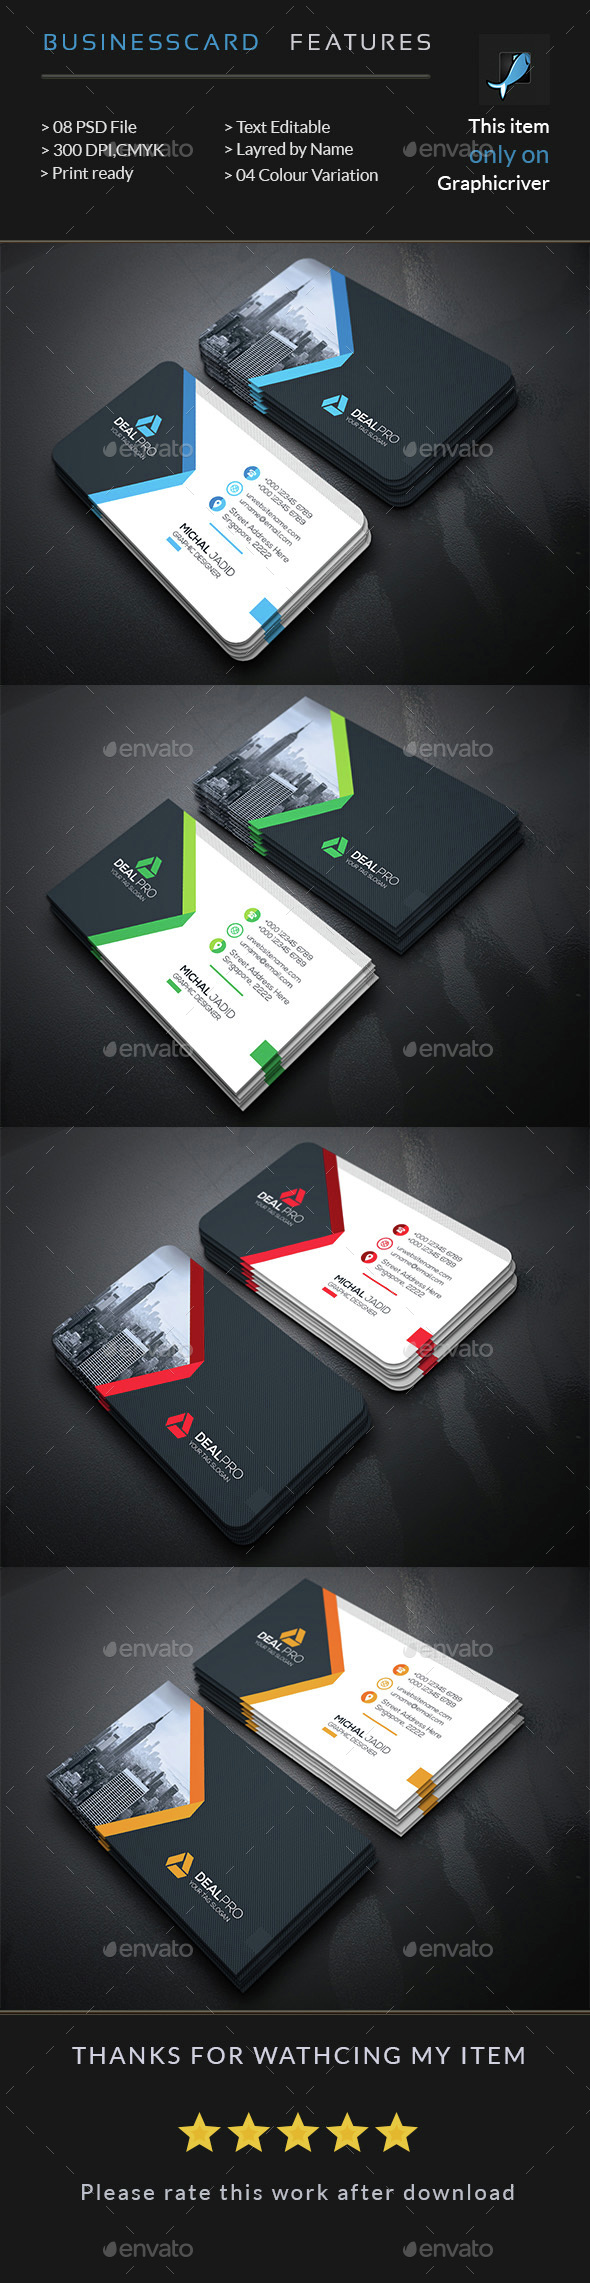 Business Card Template PSD Download Here Httpgraphicrivernet - Buy business card template